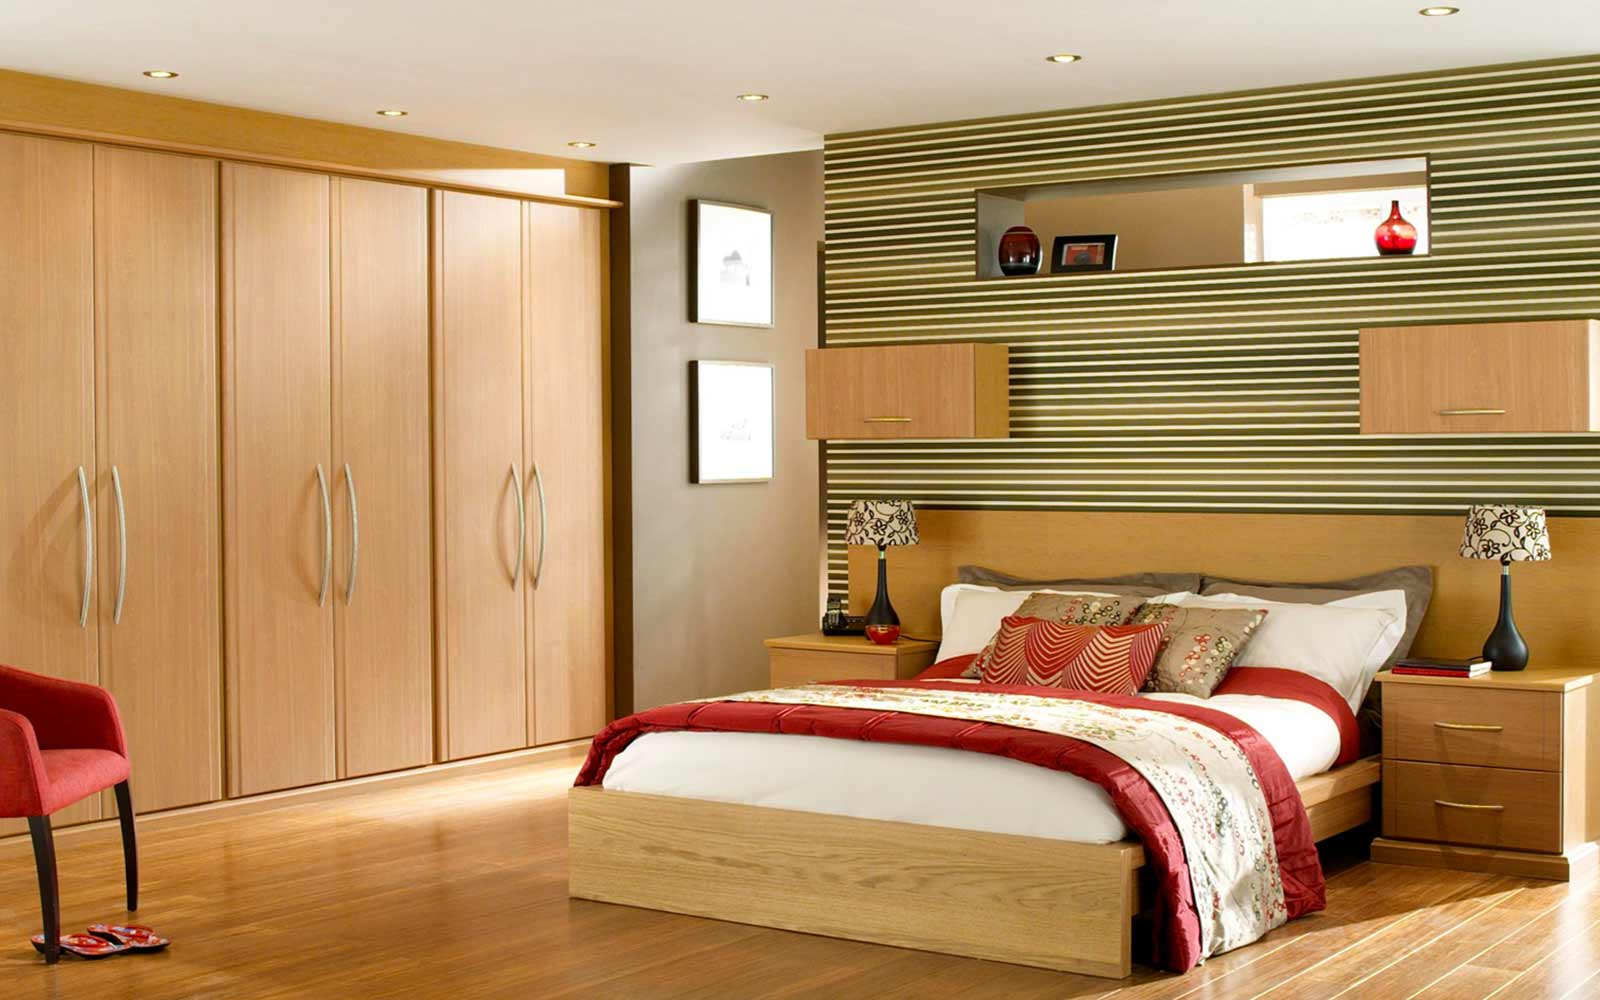 35 images of wardrobe designs for bedrooms - Design of bedroom ...